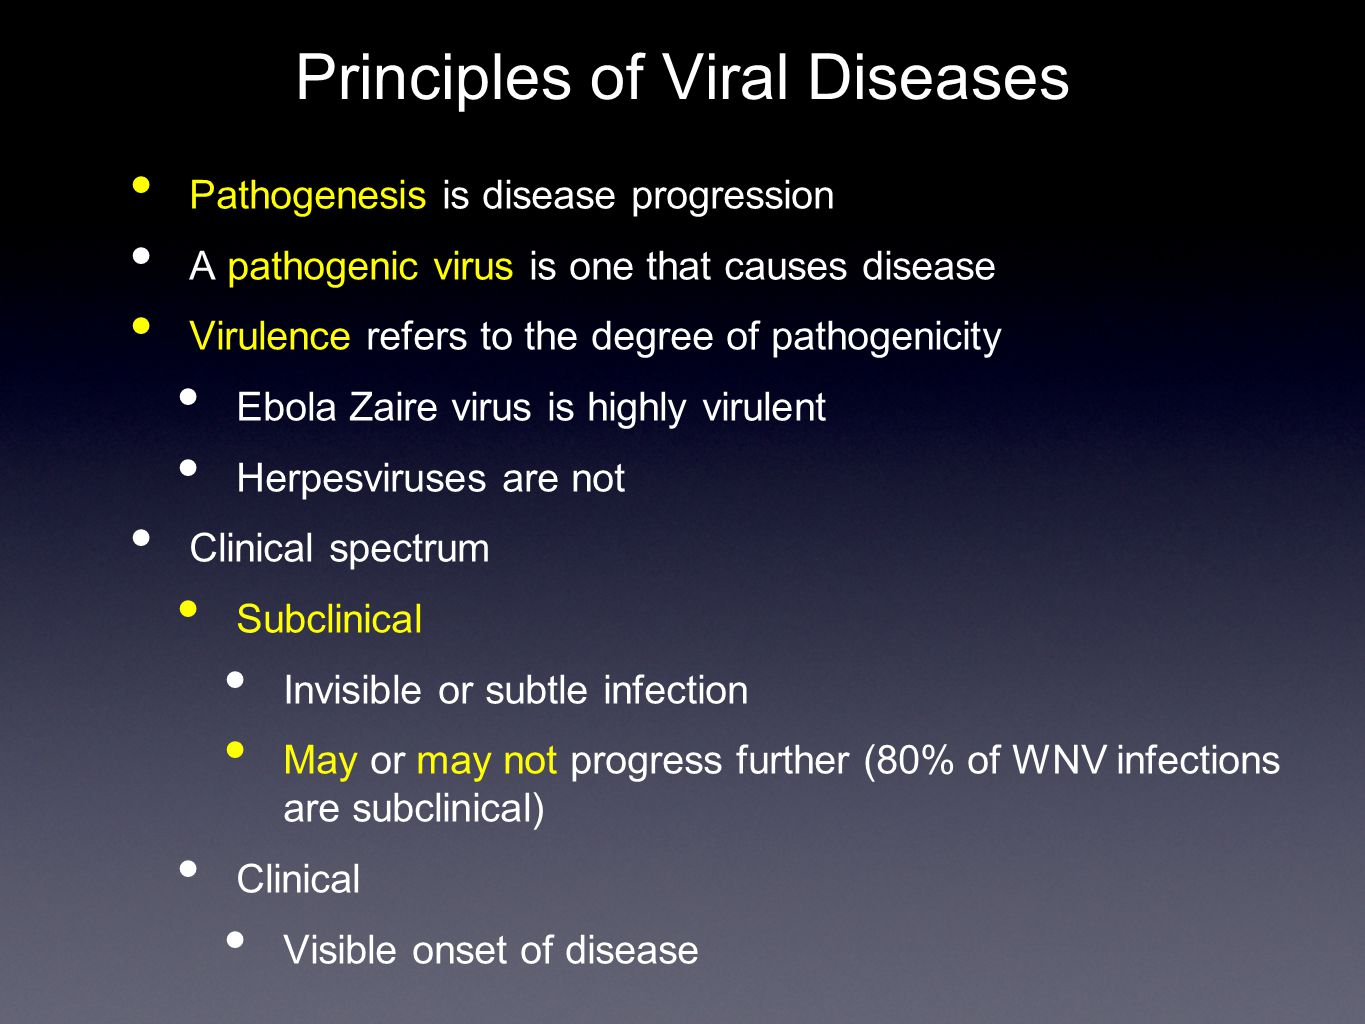 Principles of Viral Diseases Pathogenesis is disease progression A pathogenic virus is one that causes disease Virulence refers to the degree of pathogenicity Ebola Zaire virus is highly virulent Herpesviruses are not Clinical spectrum Subclinical Invisible or subtle infection May or may not progress further (80% of WNV infections are subclinical) Clinical Visible onset of disease